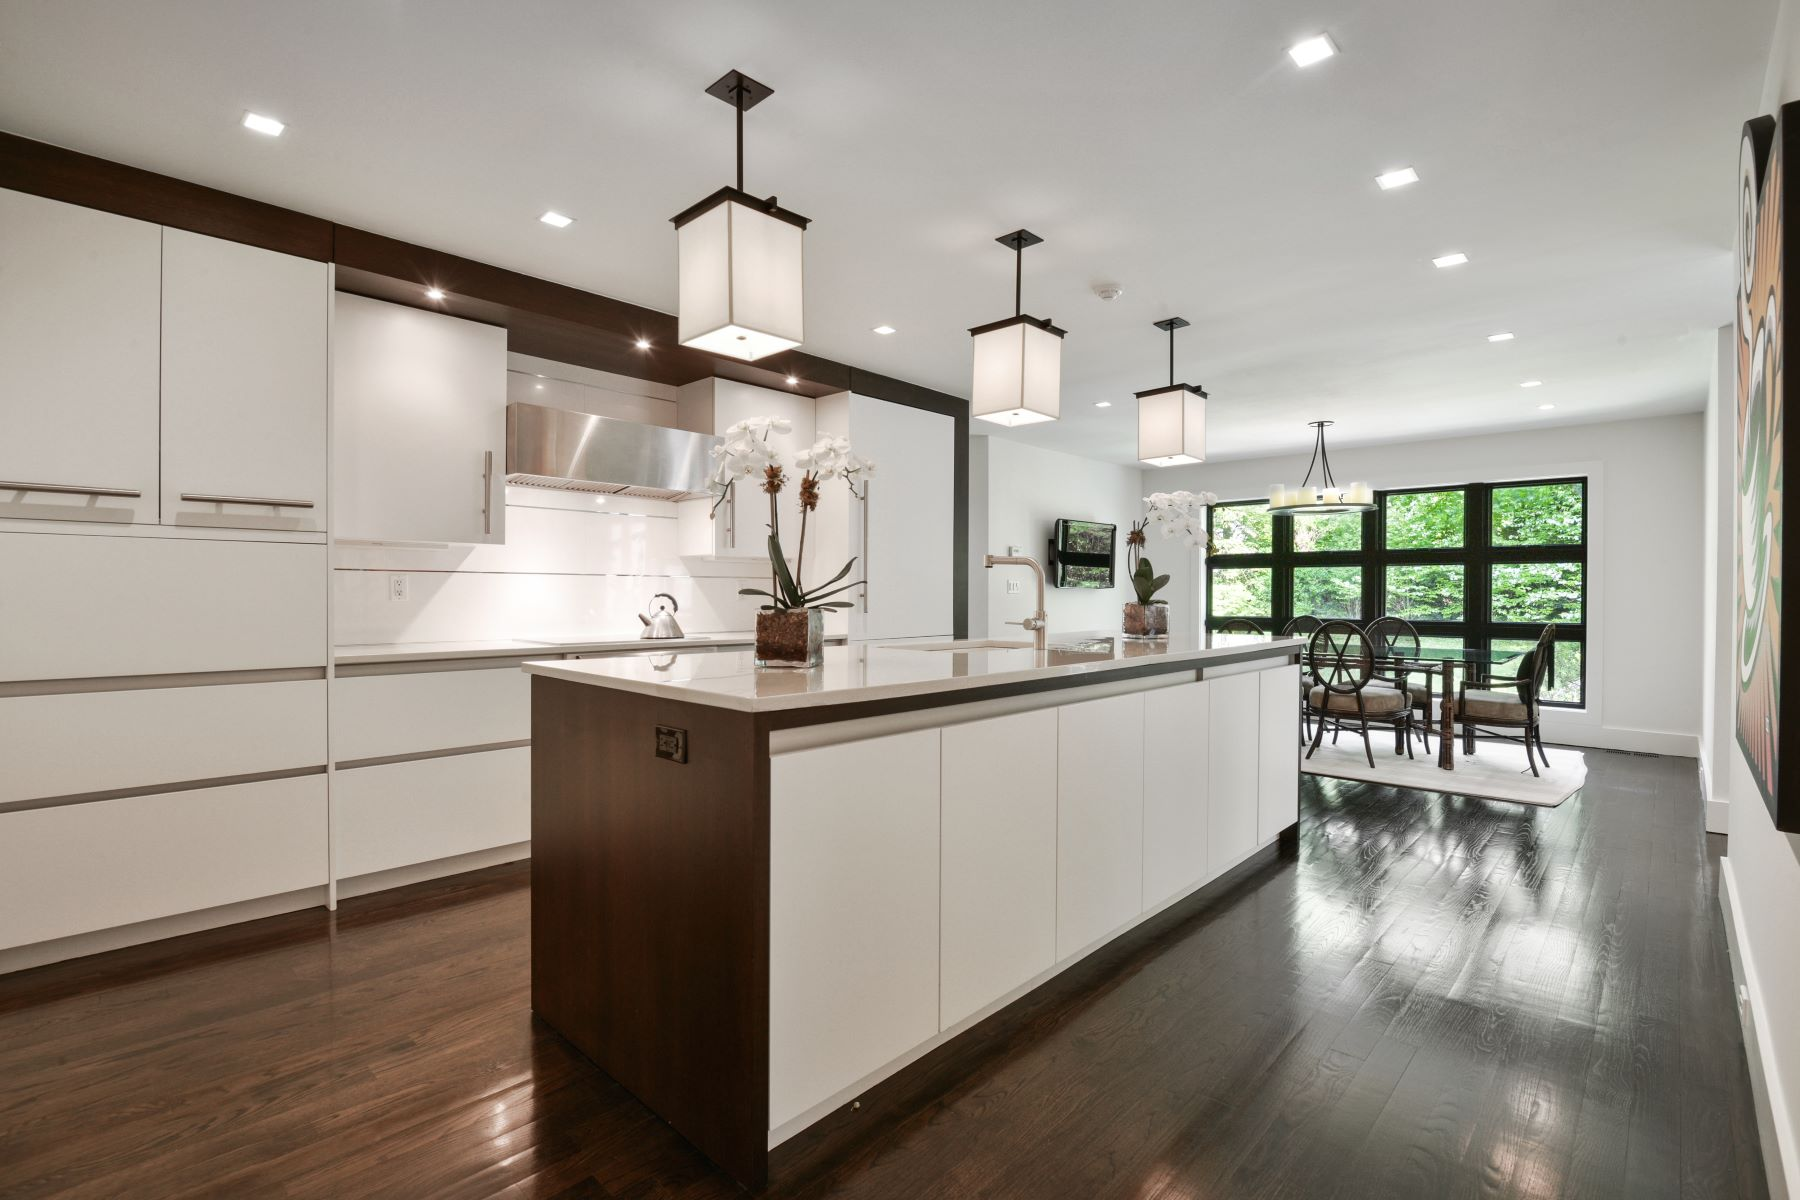 Single Family Homes for Sale at Completely Renovated Striking Home 196 Rock Creek Lane Scarsdale, New York 10583 United States